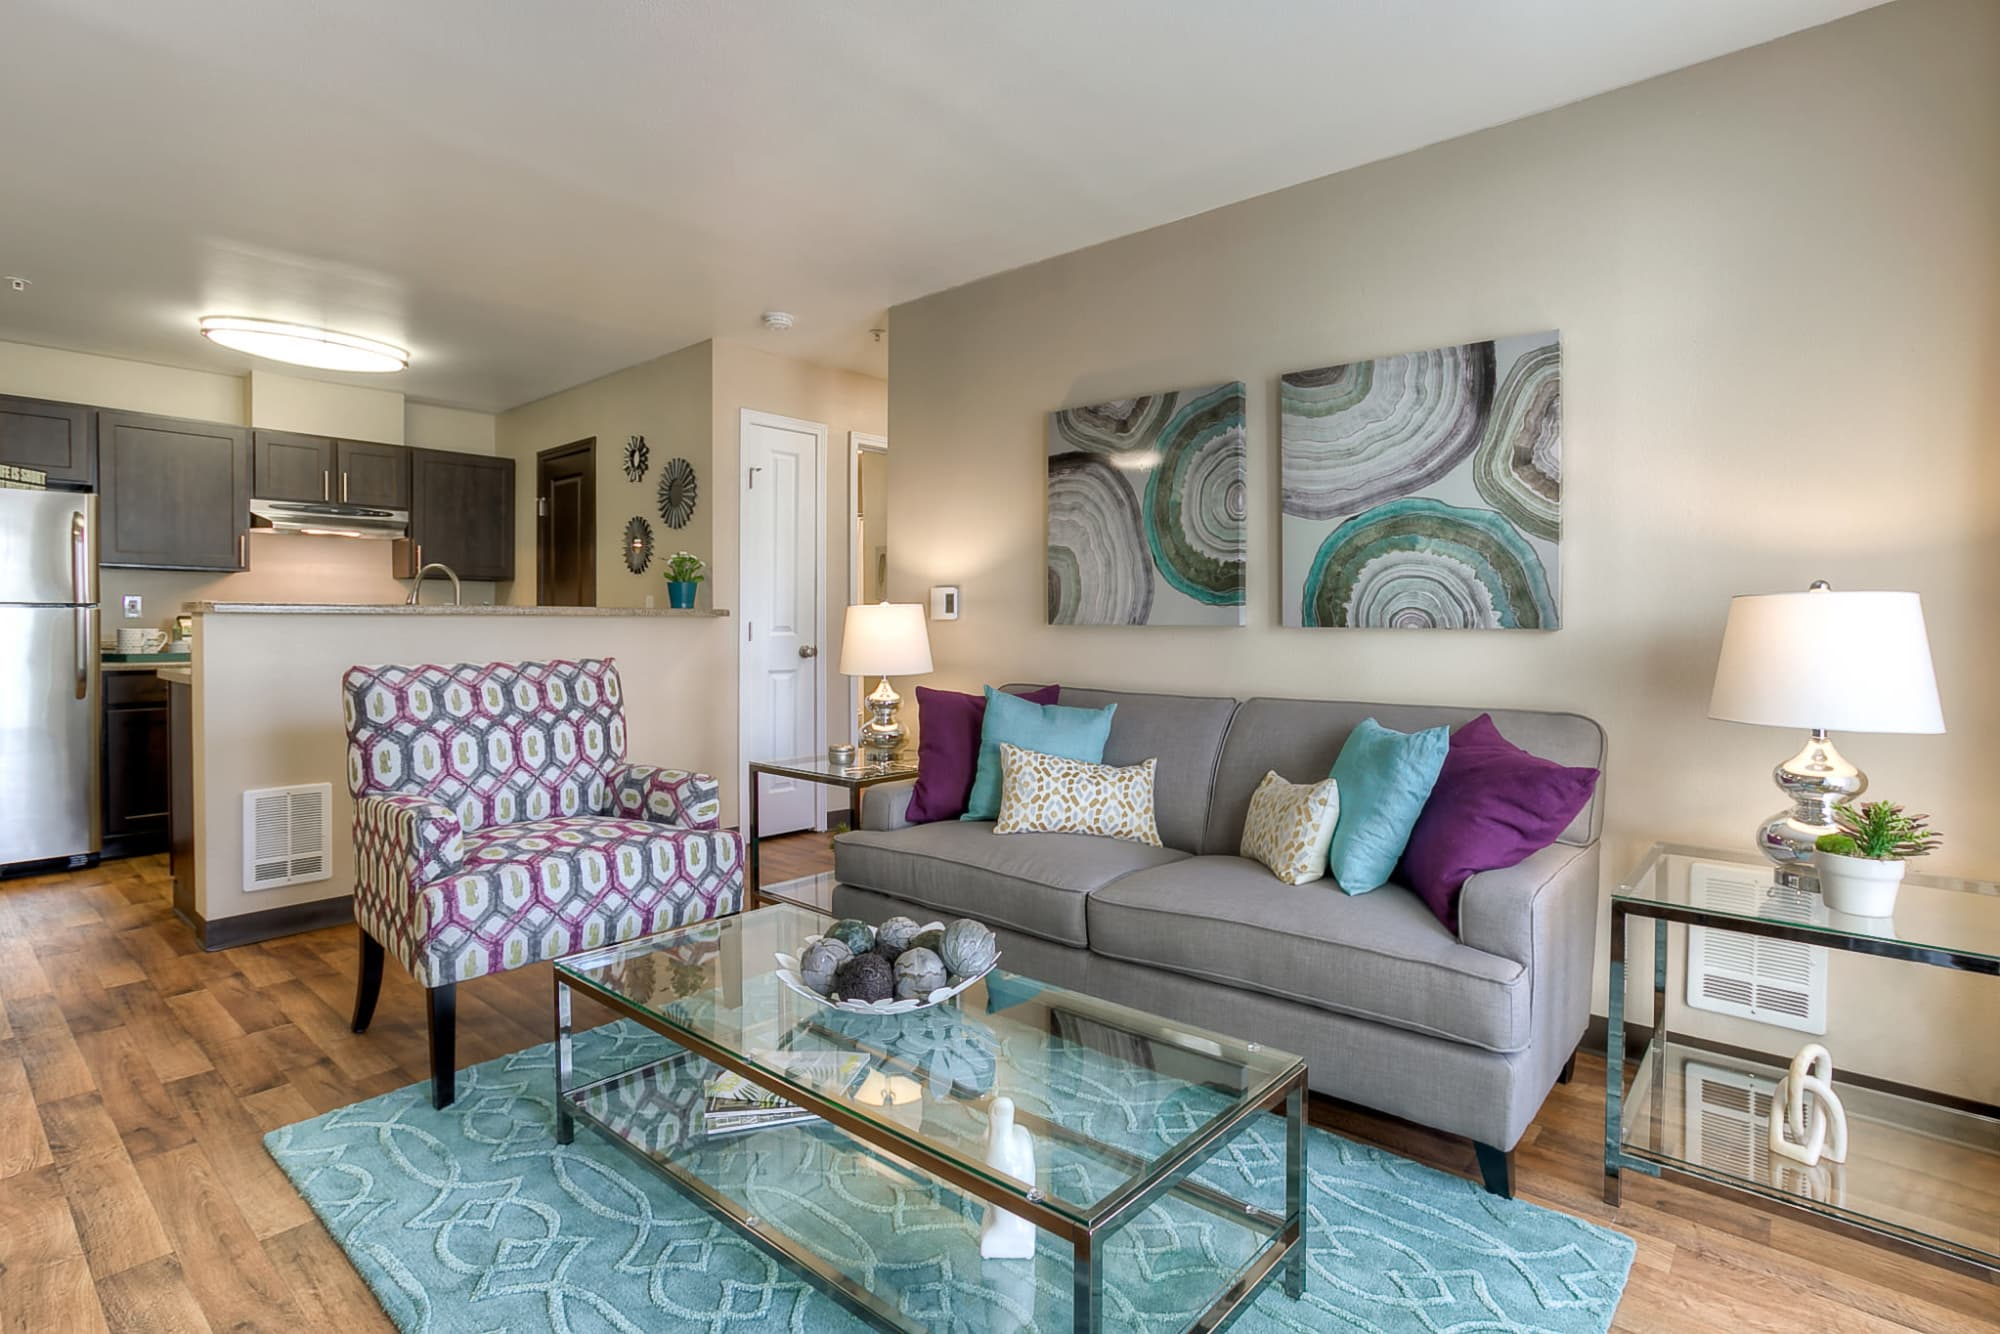 Living Room Area Fully Furnished Model at Pebble Cove Apartments in Renton